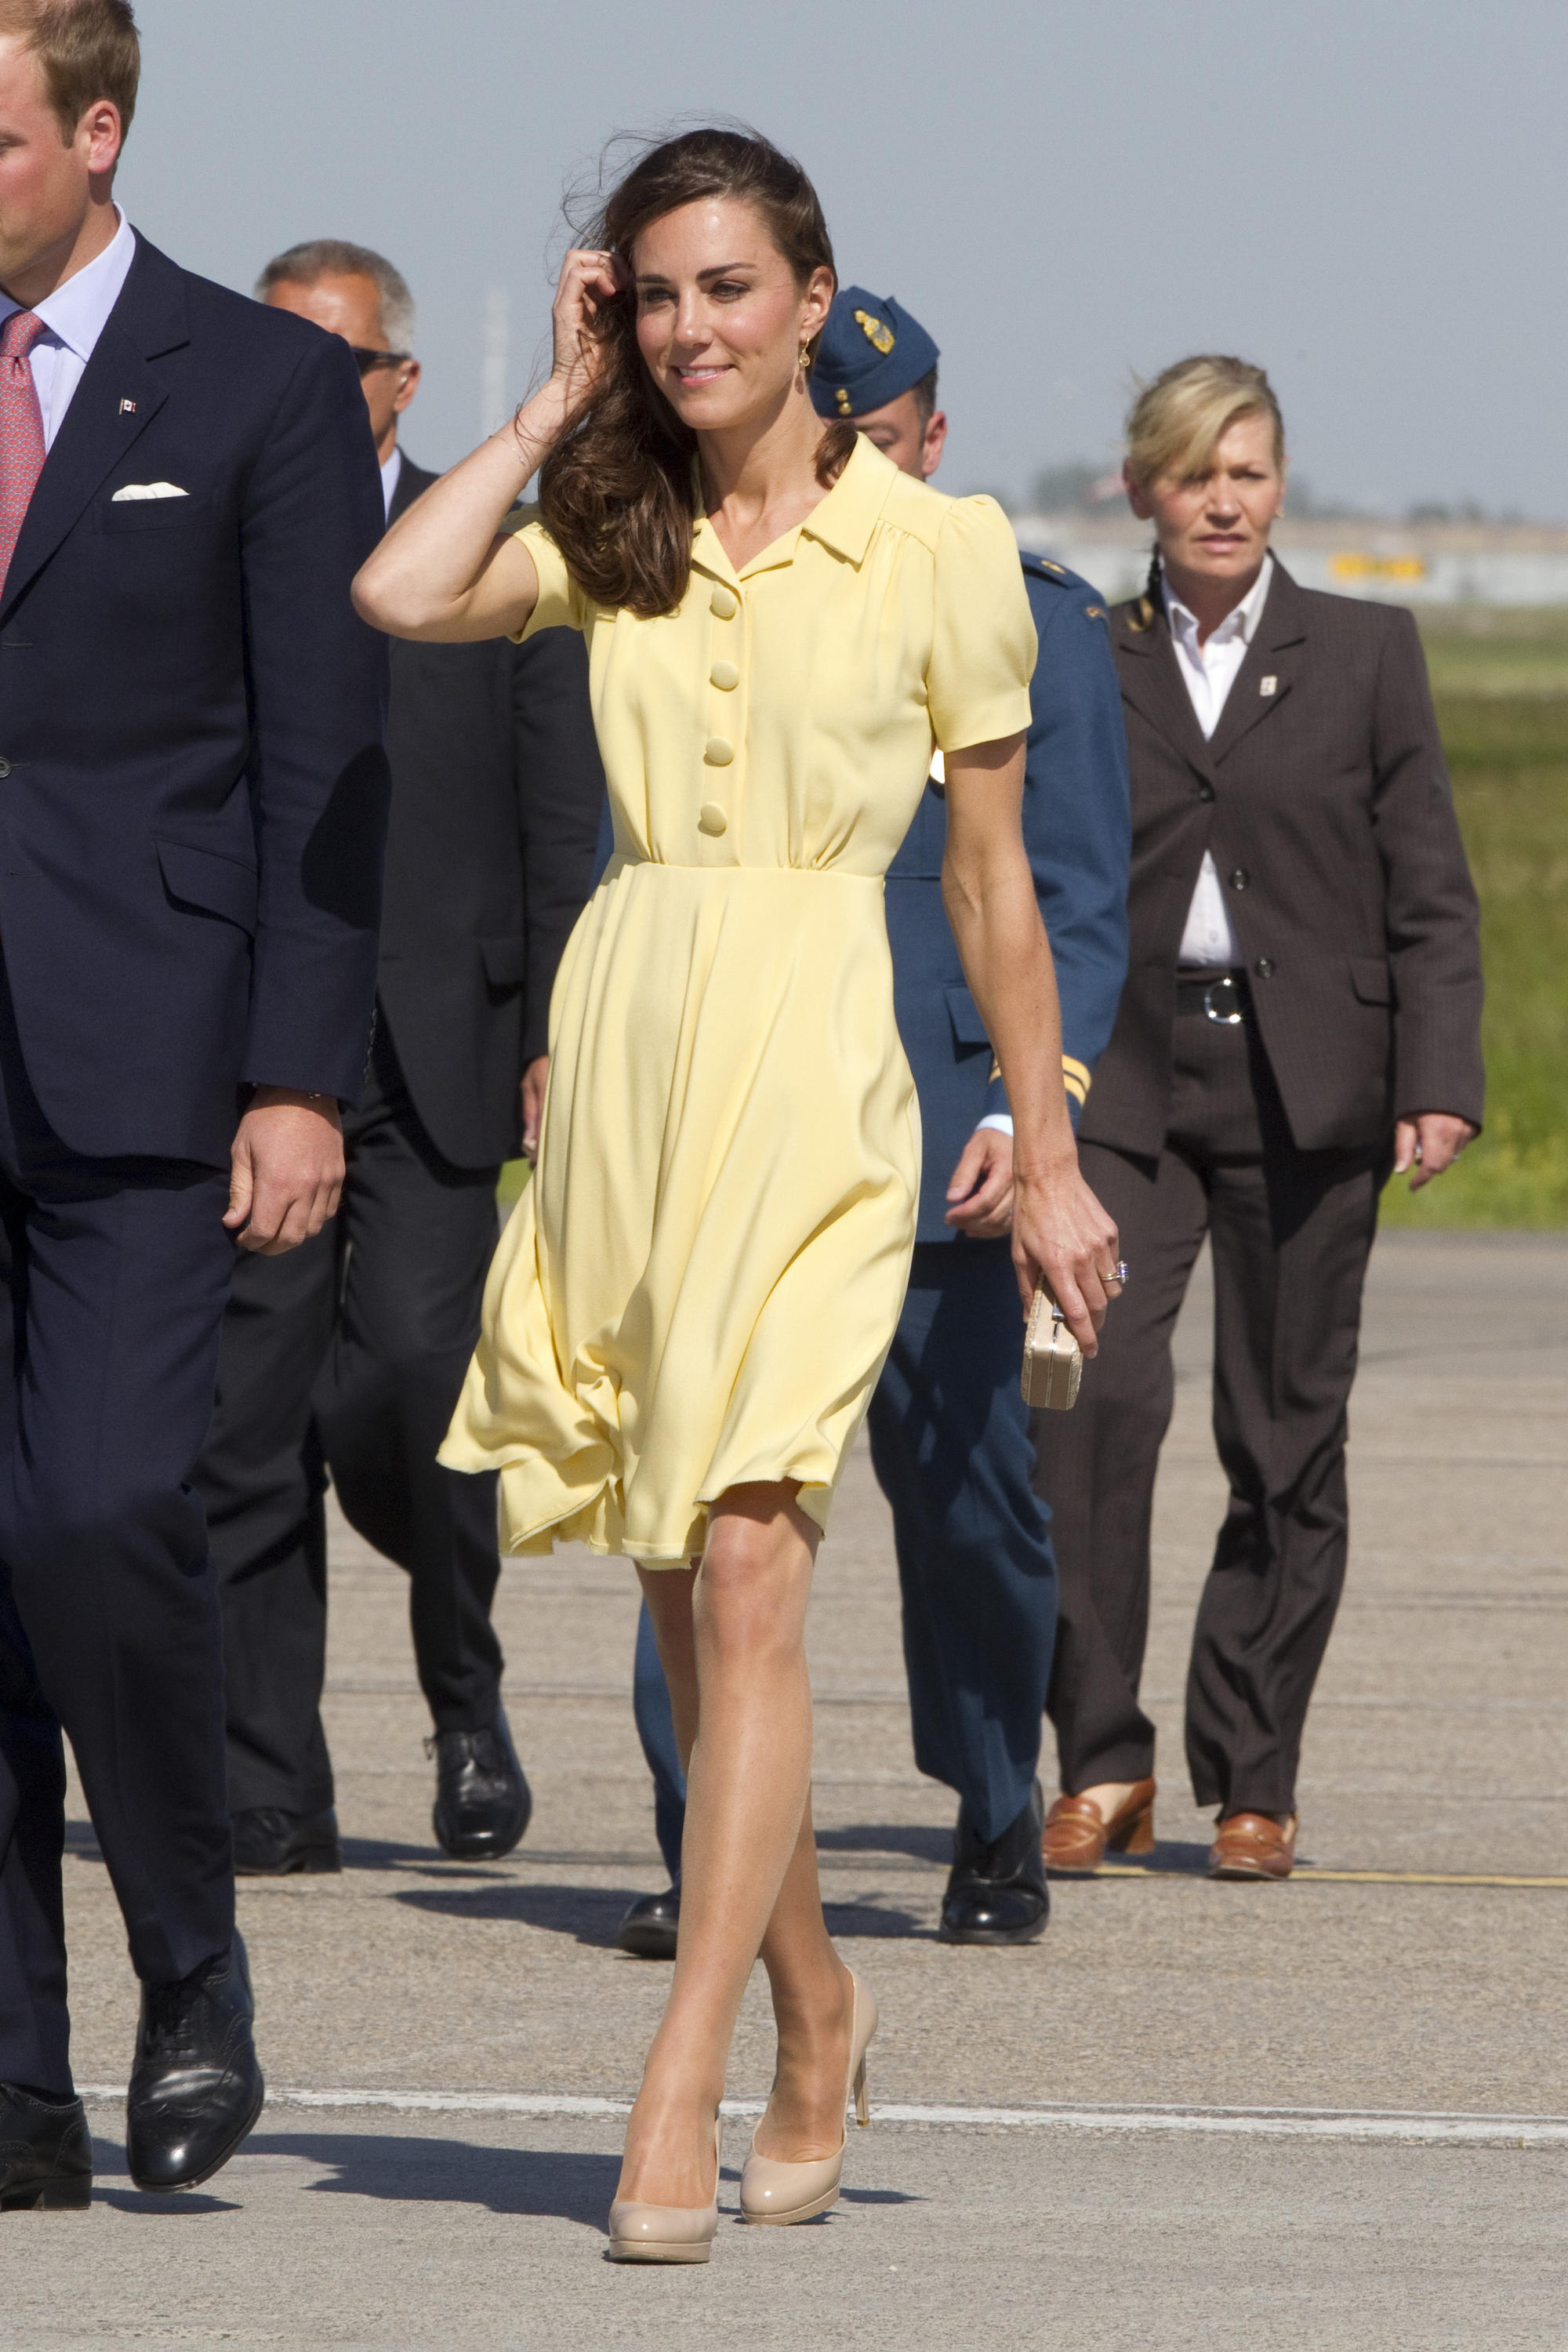 Kate Middleton Style Tips: Neutral Pumps